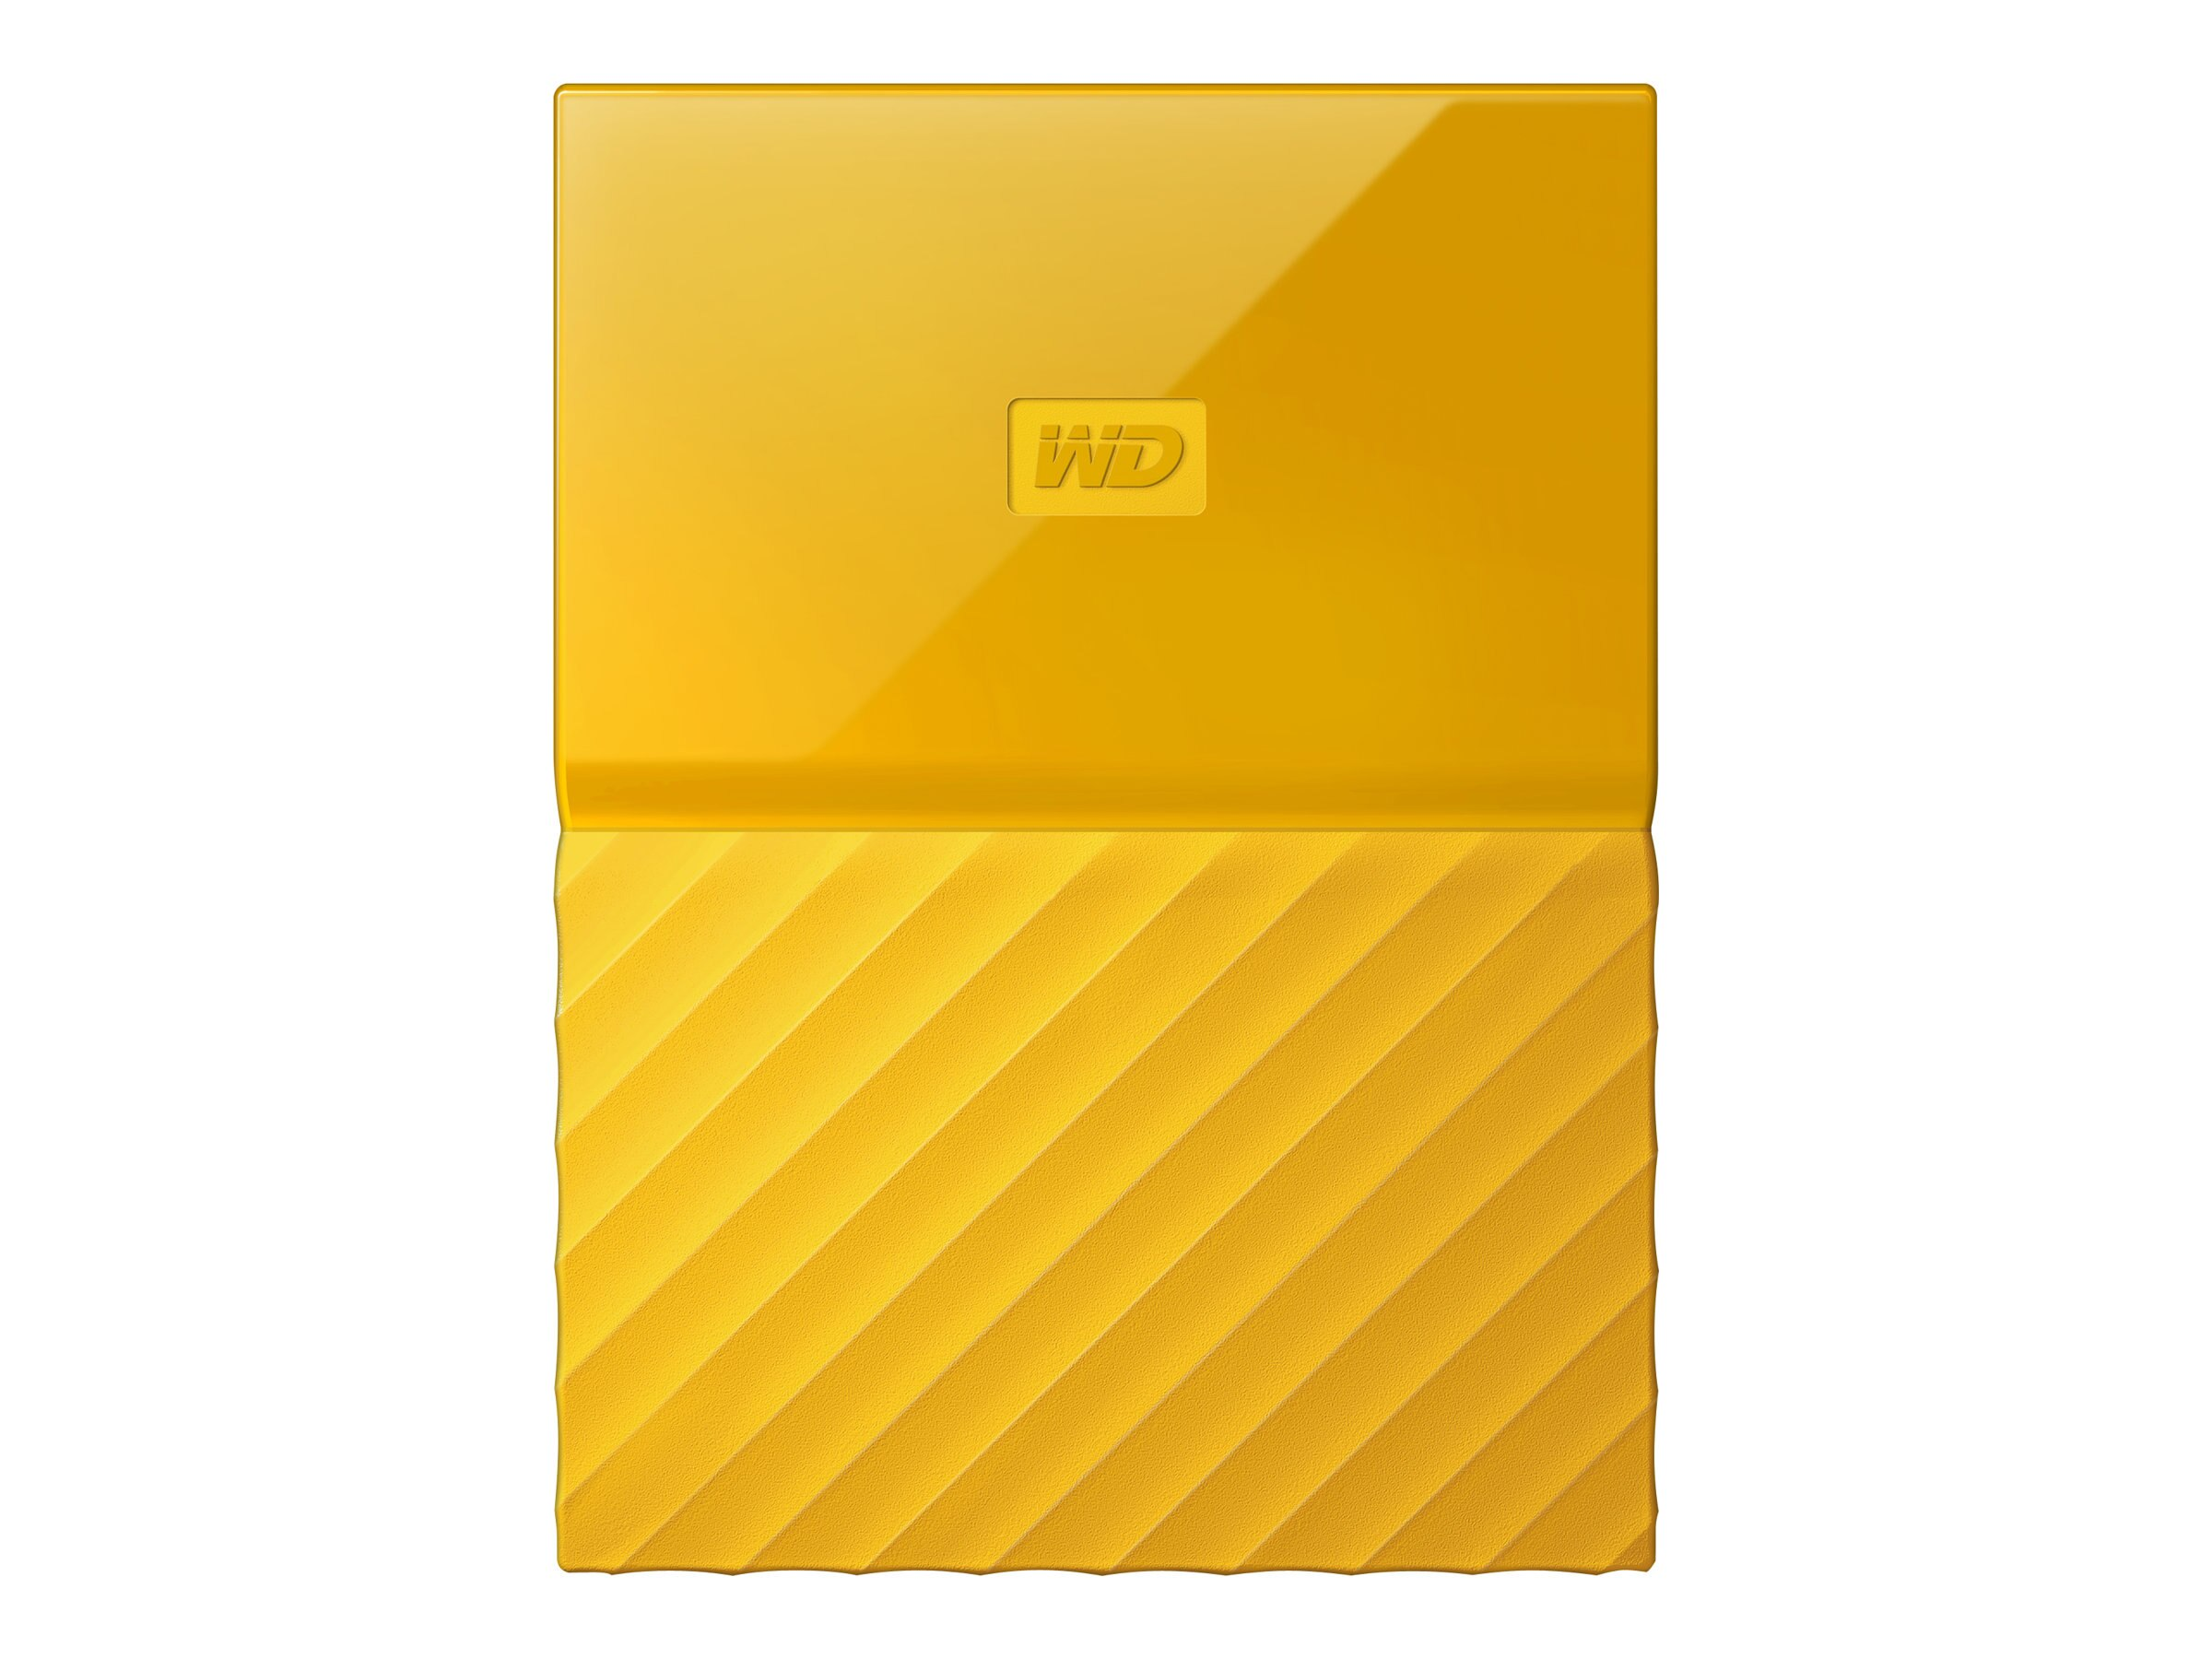 WD 3TB My Passport USB 3.0 Portable Hard Drive - Yellow, WDBYFT0030BYL-WESN